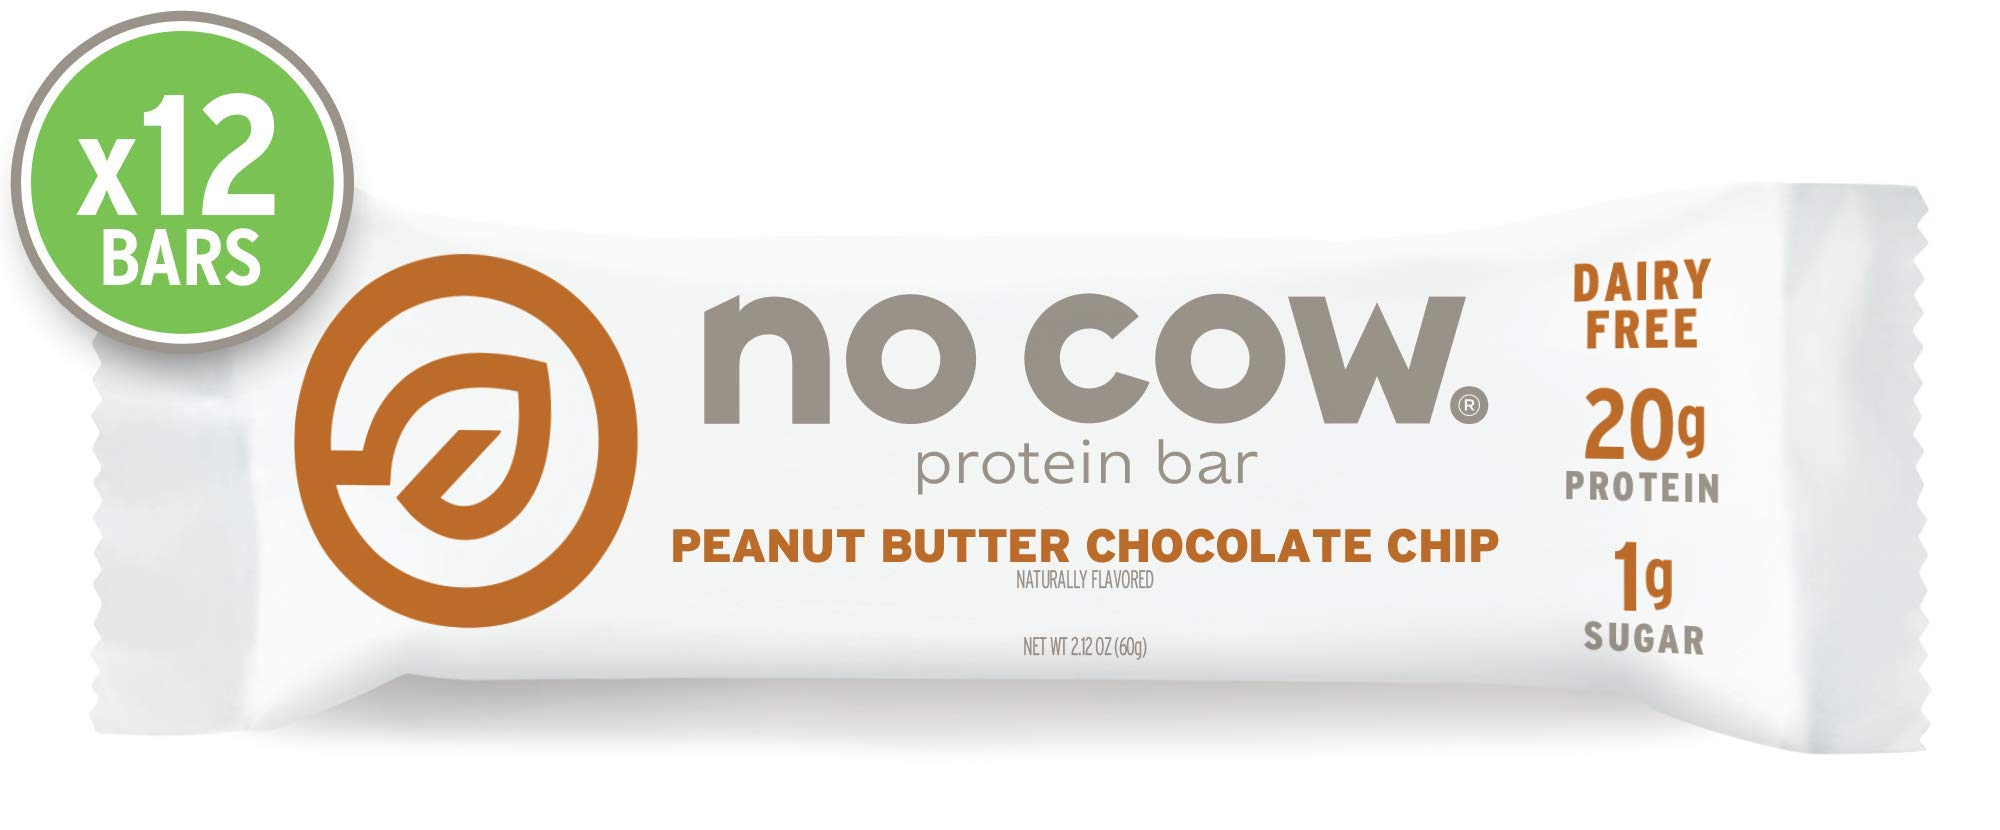 No Cow Protein bar, Peanut Butter Chocolate Chip, 20g Plant Based Protein, Keto Friendly, Low Sugar, Dairy Free, Gluten Free, Vegan, High Fiber, Non-GMO, 12Count by No Cow